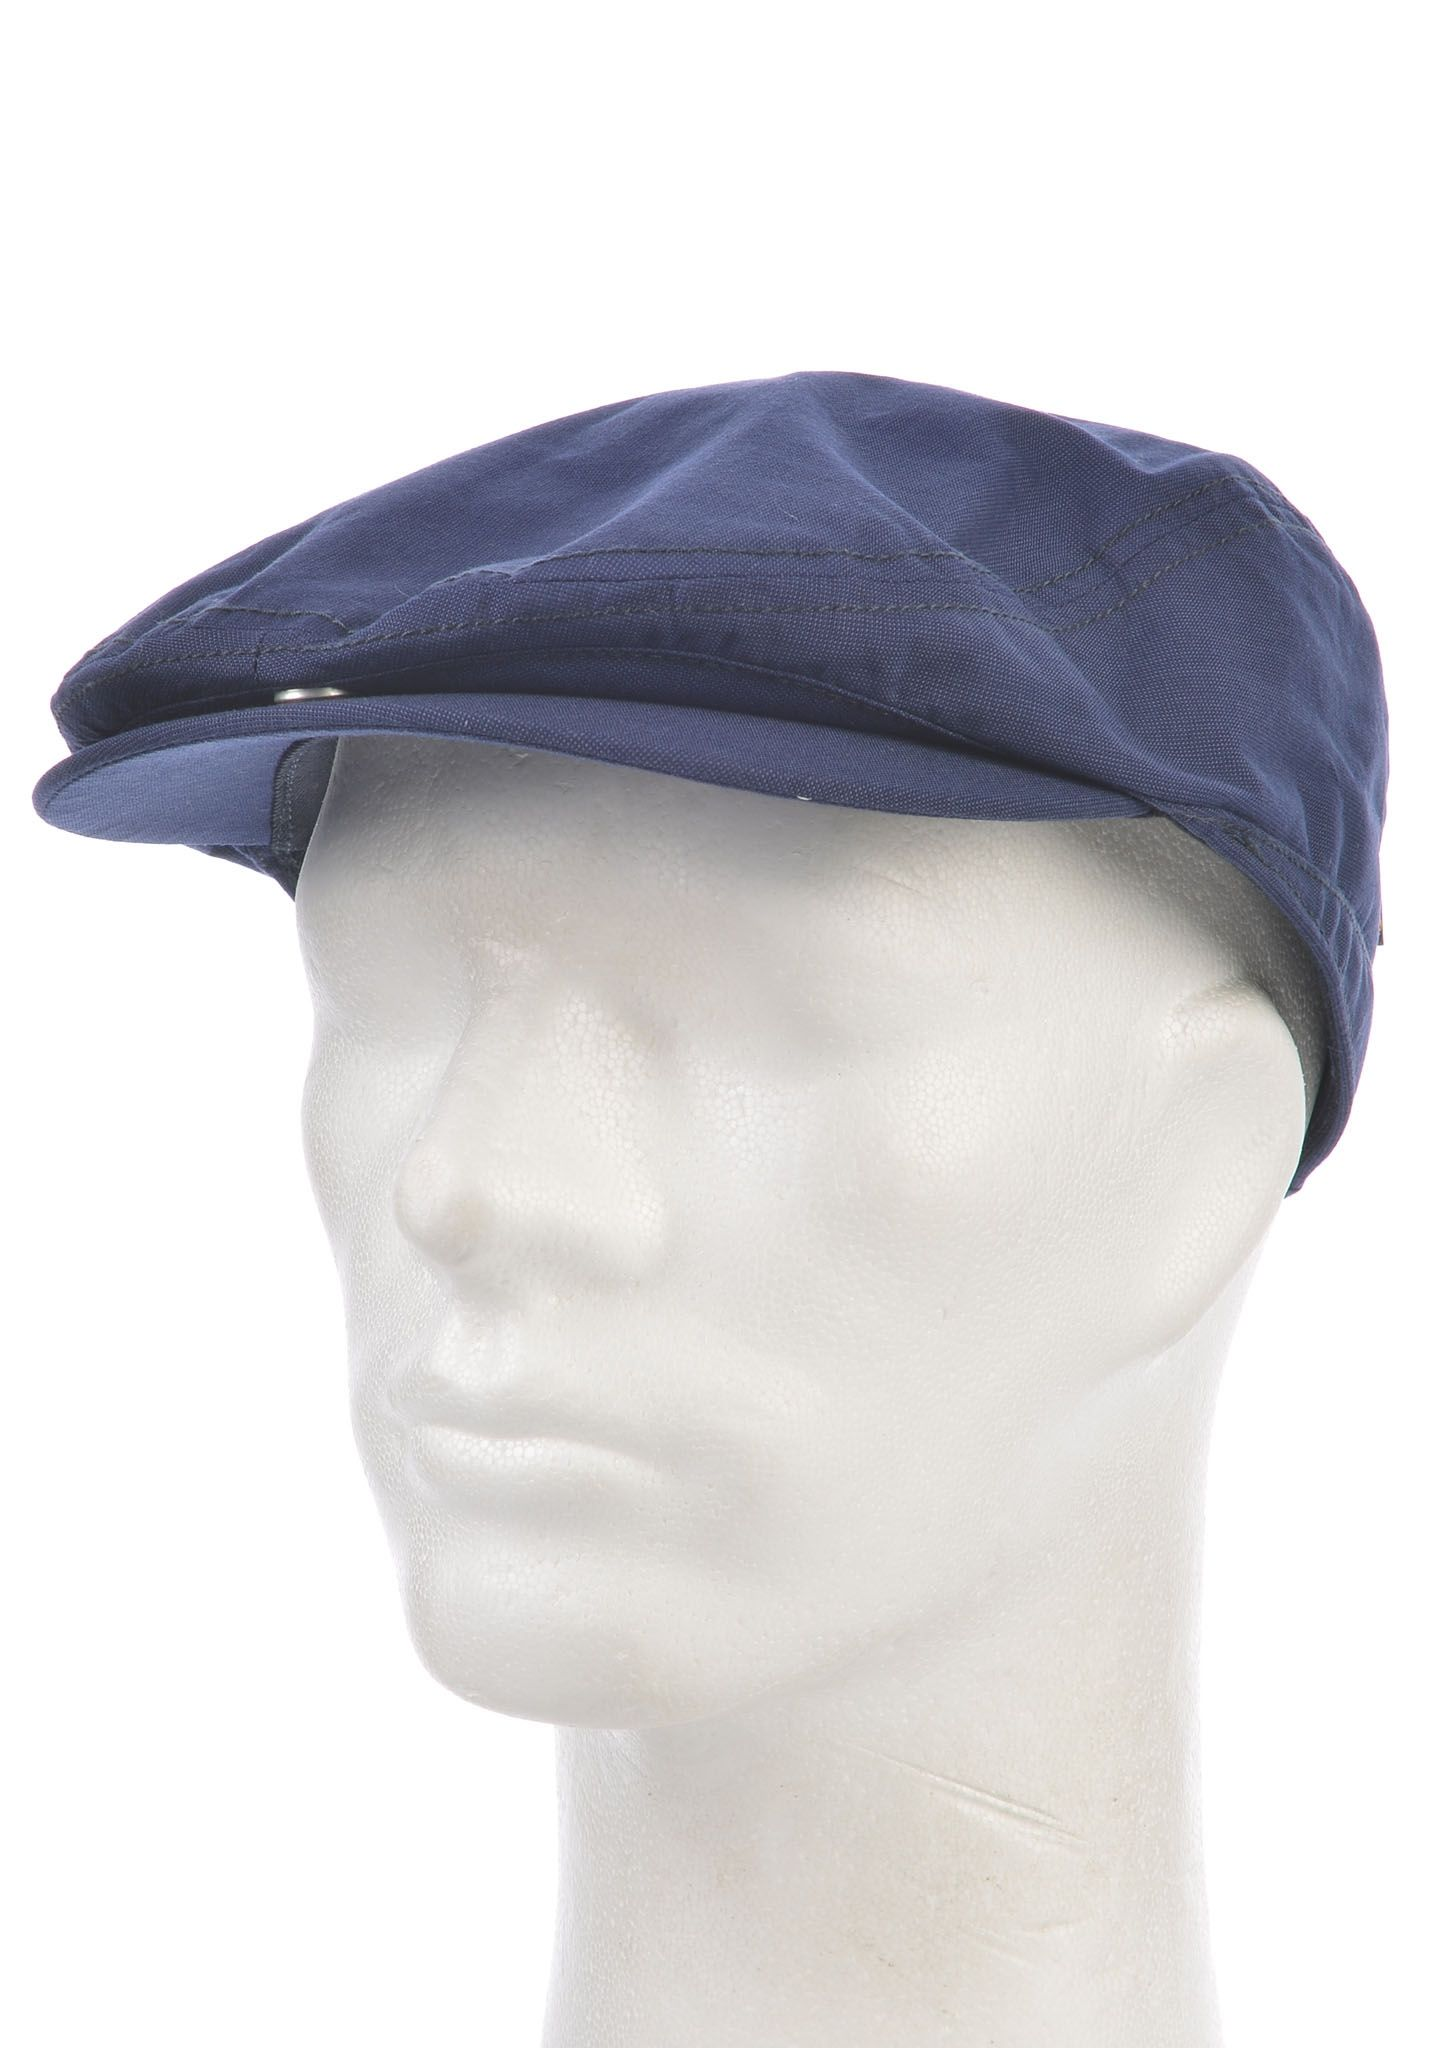 G-STAR Docklam Flat - Cap for Men - Blue - Planet Sports 975bfb9836a